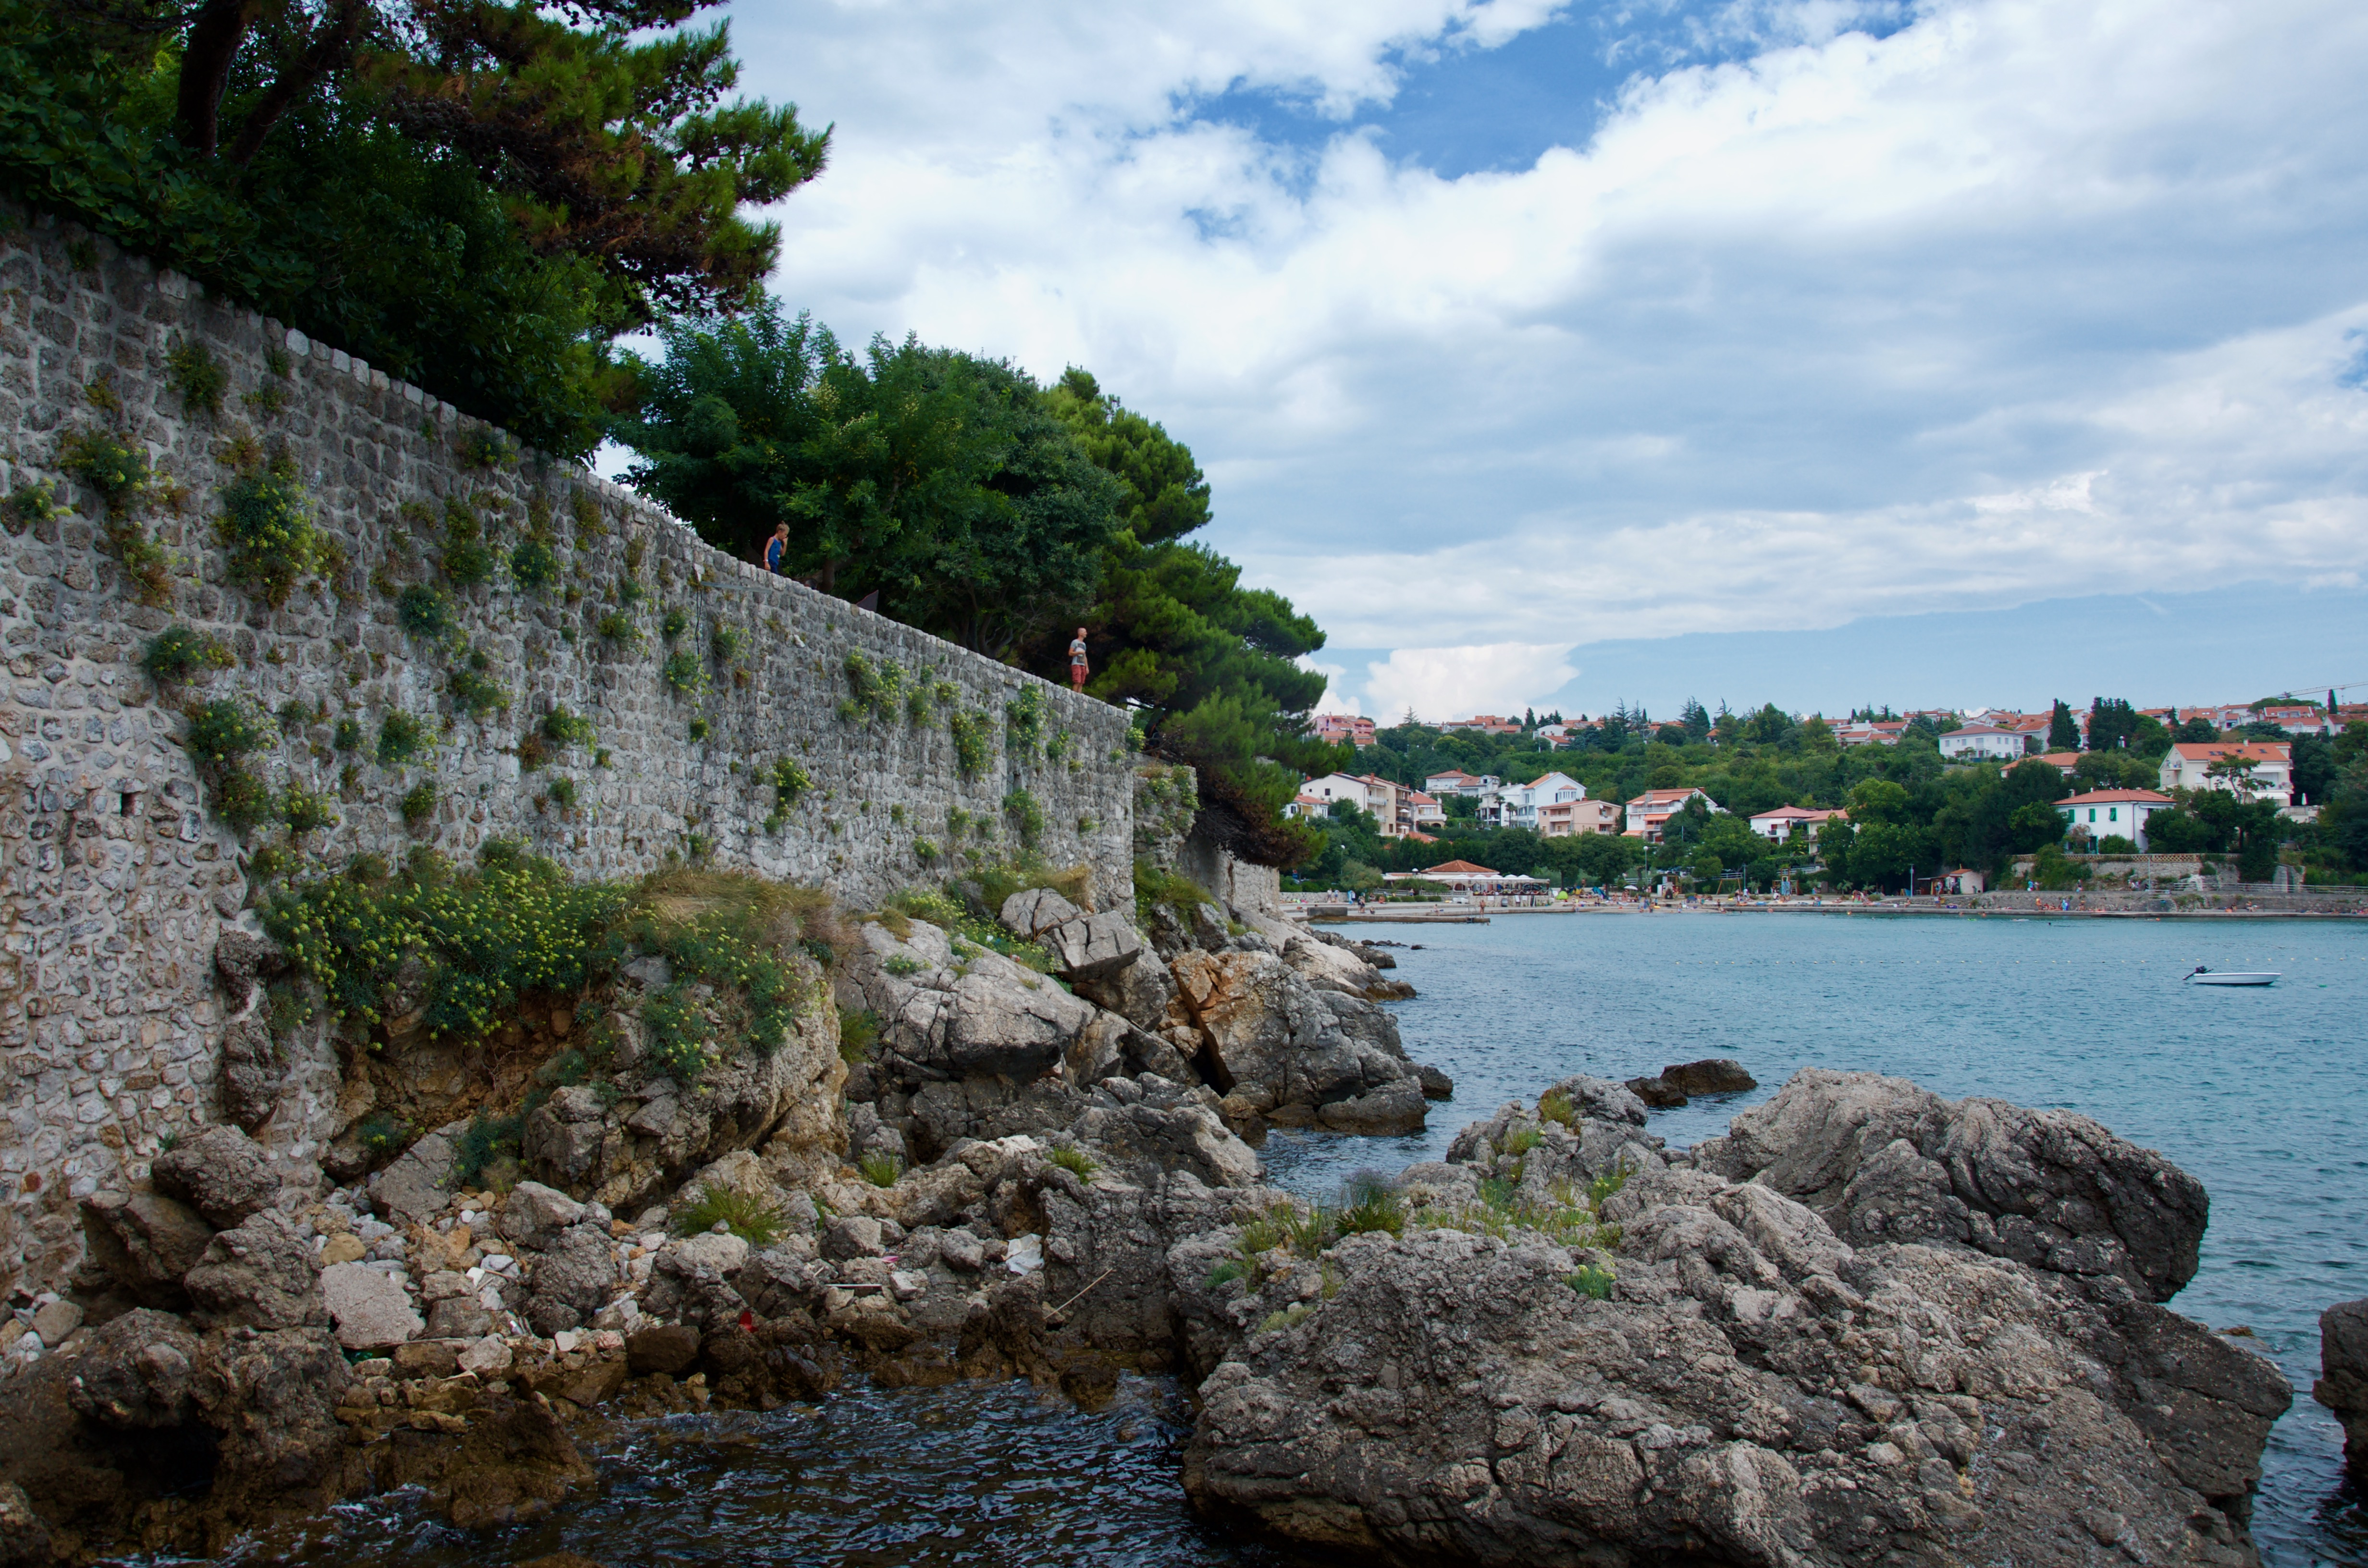 A visit to the city of Krk in Croatia. 2